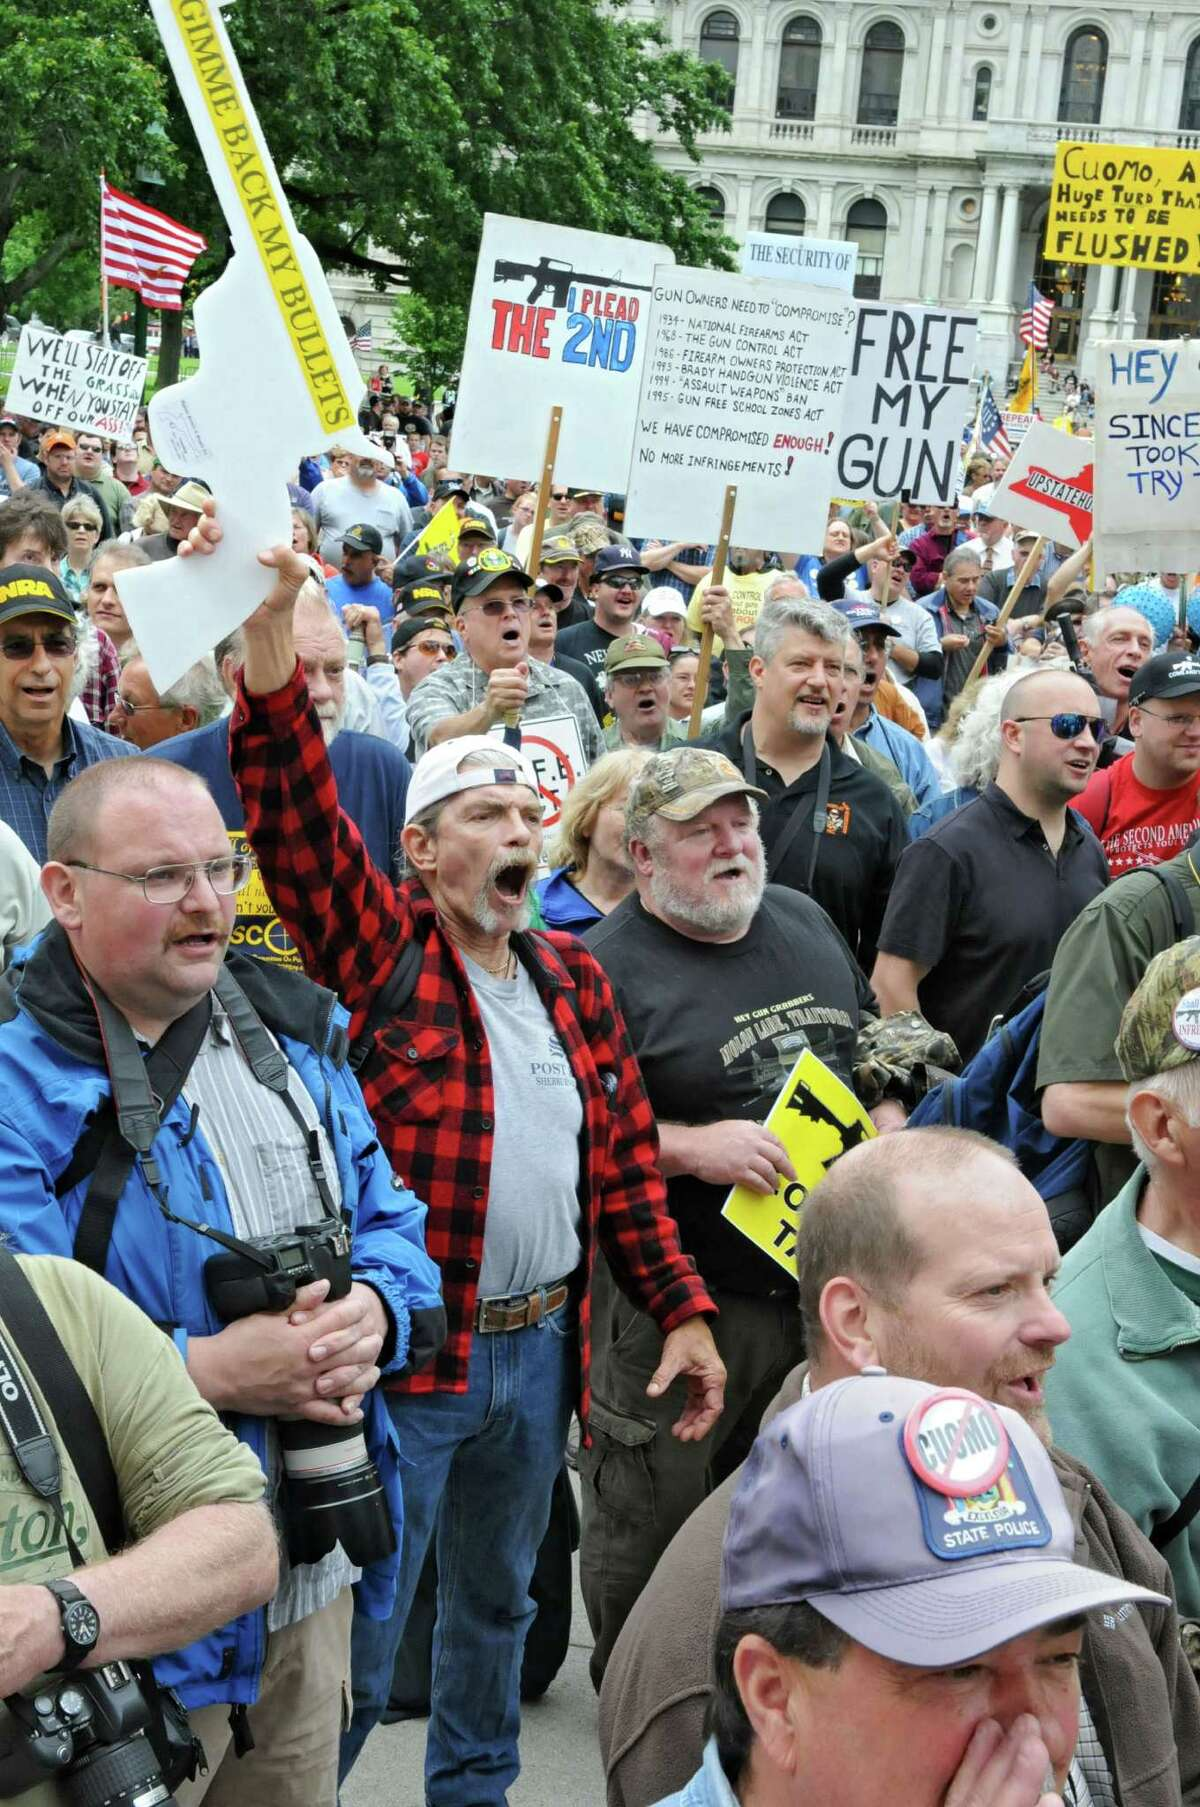 The crowd cheers during an anti-SAFE Act rally at the West Capitol Park on Tuesday, June 11, 2013 in Albany, N.Y. (Lori Van Buren / Times Union)